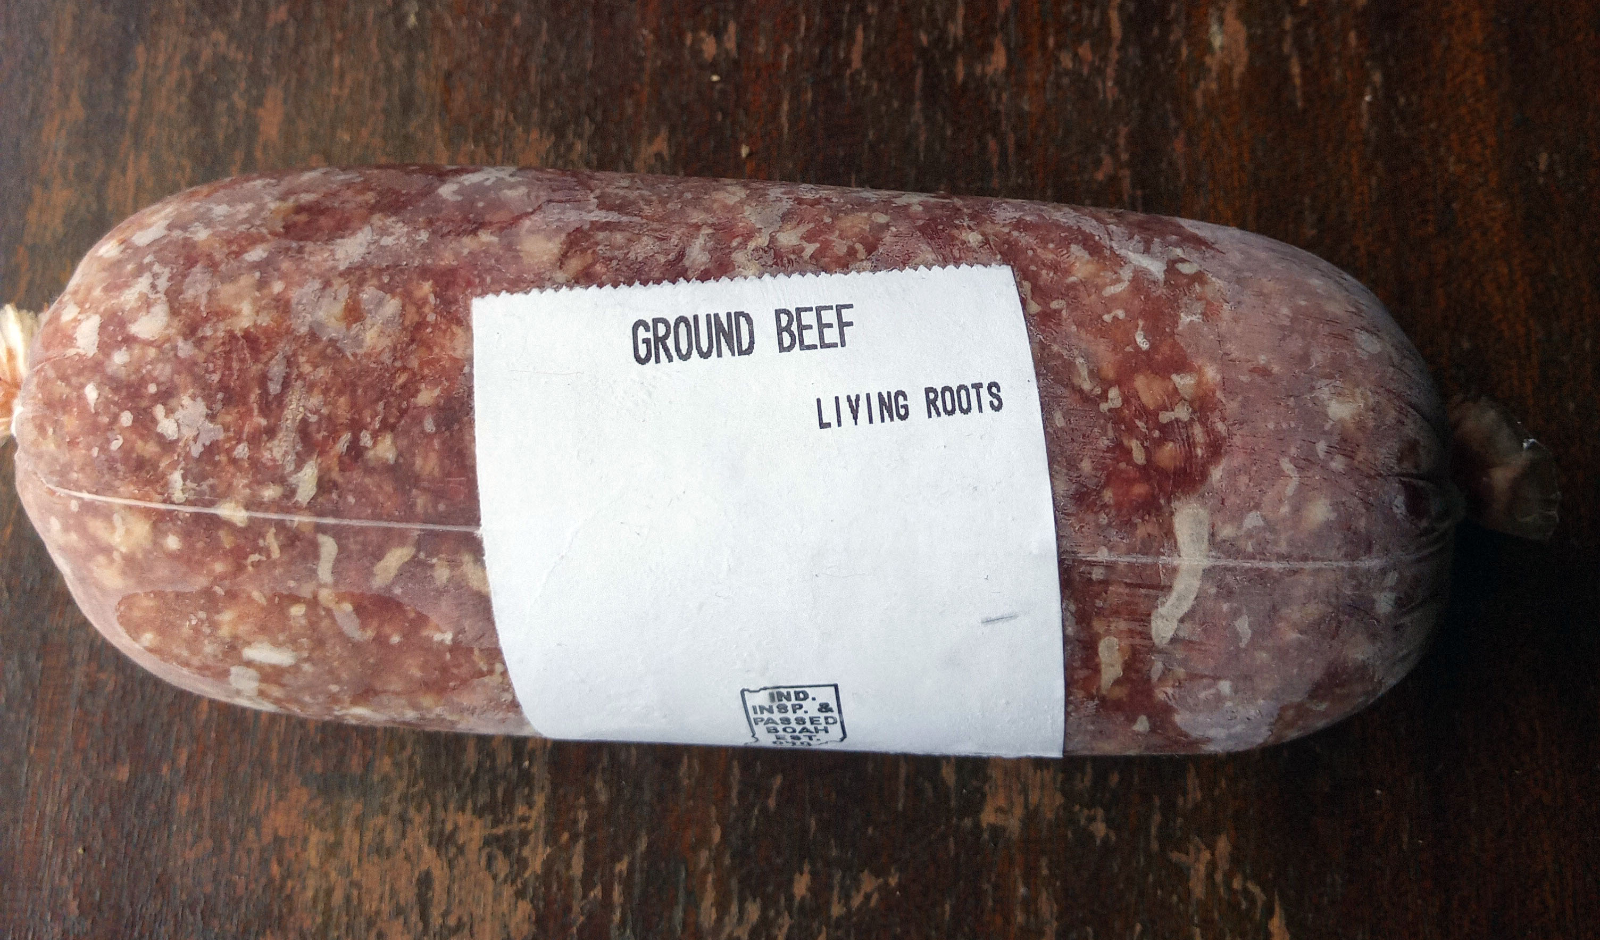 100-grassfed-ground-beef-1-lb-better-than-just-pasture-raised-never-any-grain-hormones-or-antibiotics